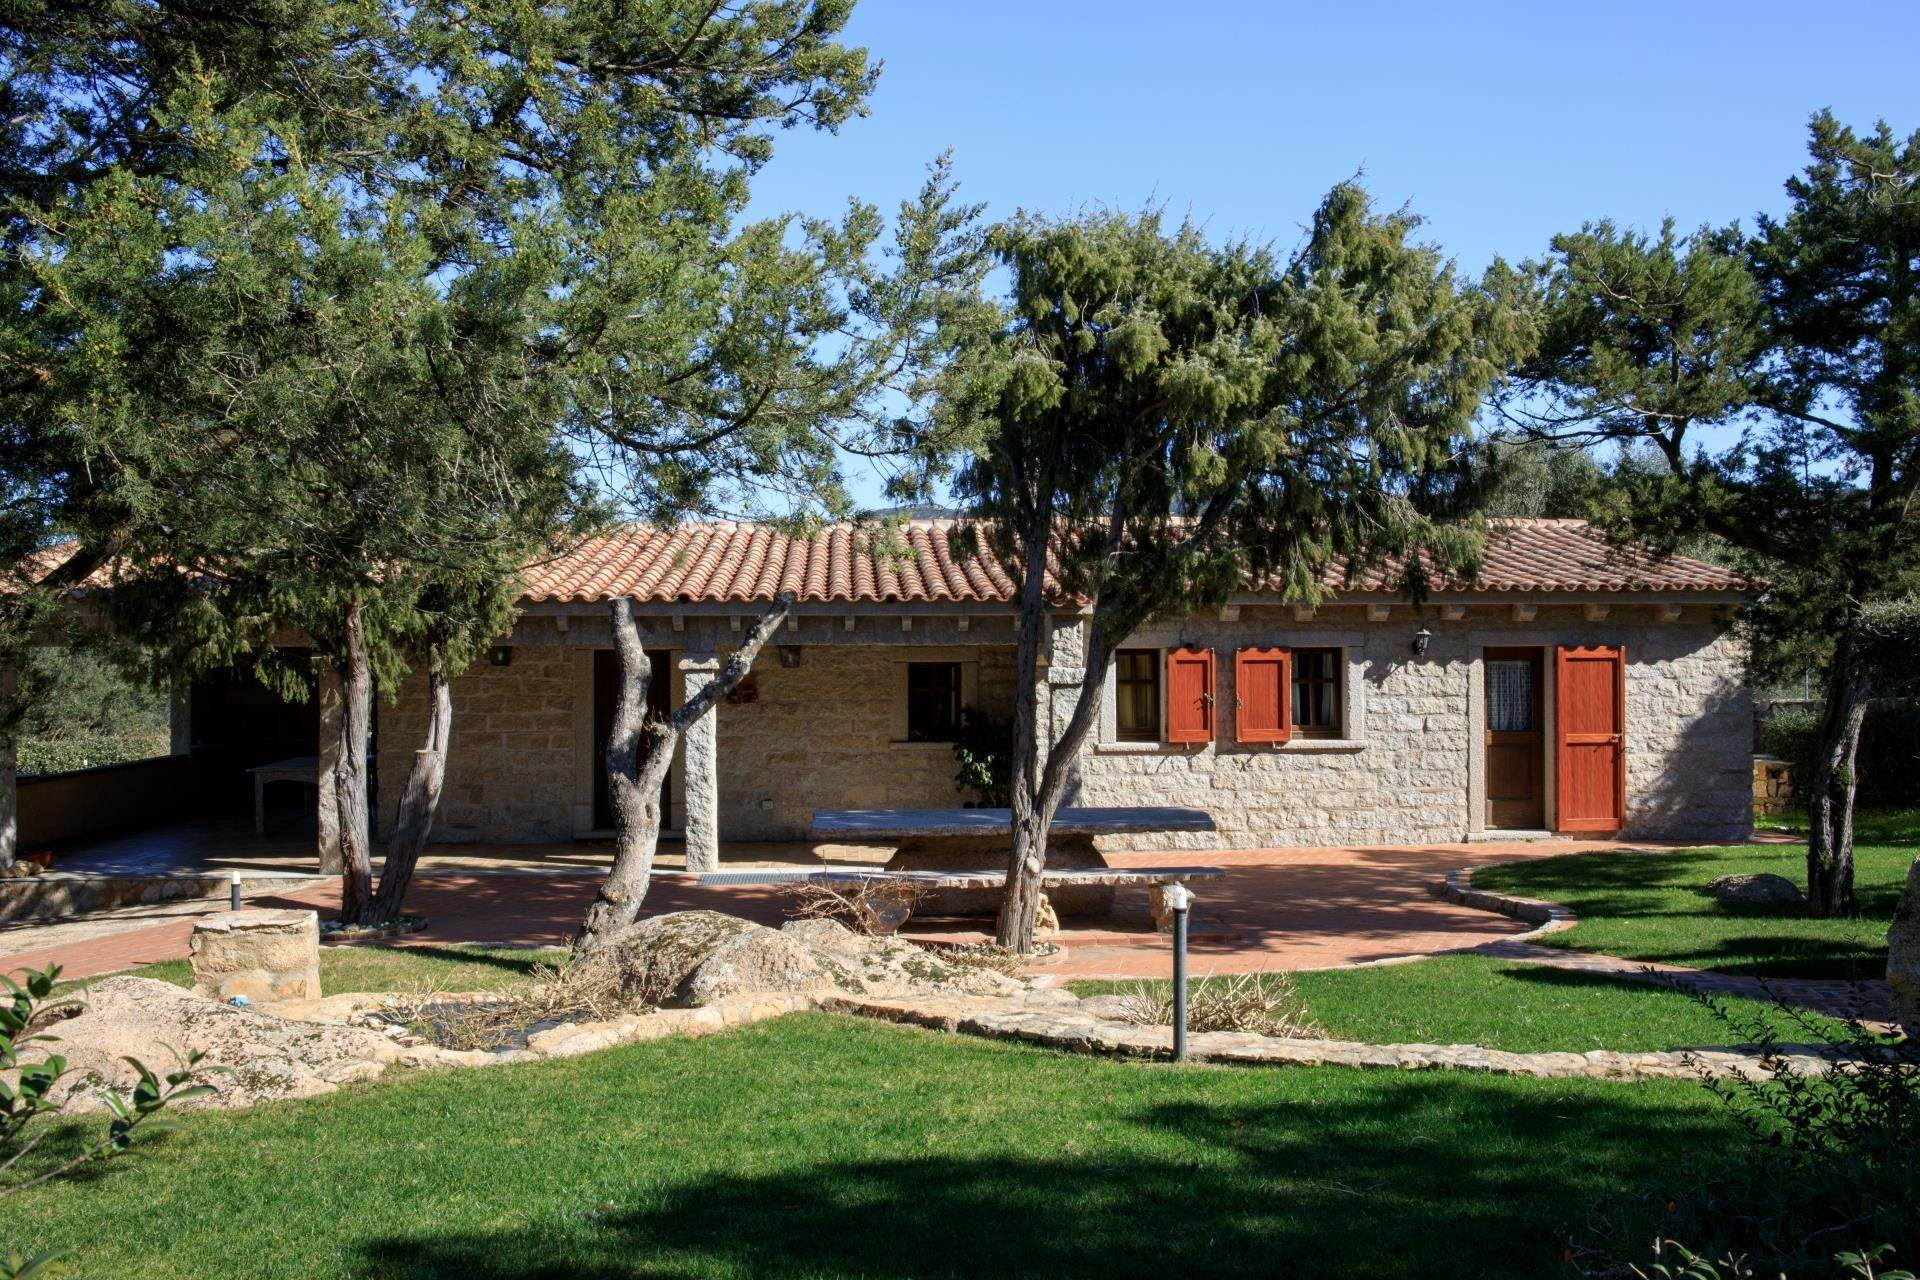 13. Villa/Townhouse for Rent at Country Villa with Pool for rent Costa Smeralda, Olbia Tempio,07021 Italy